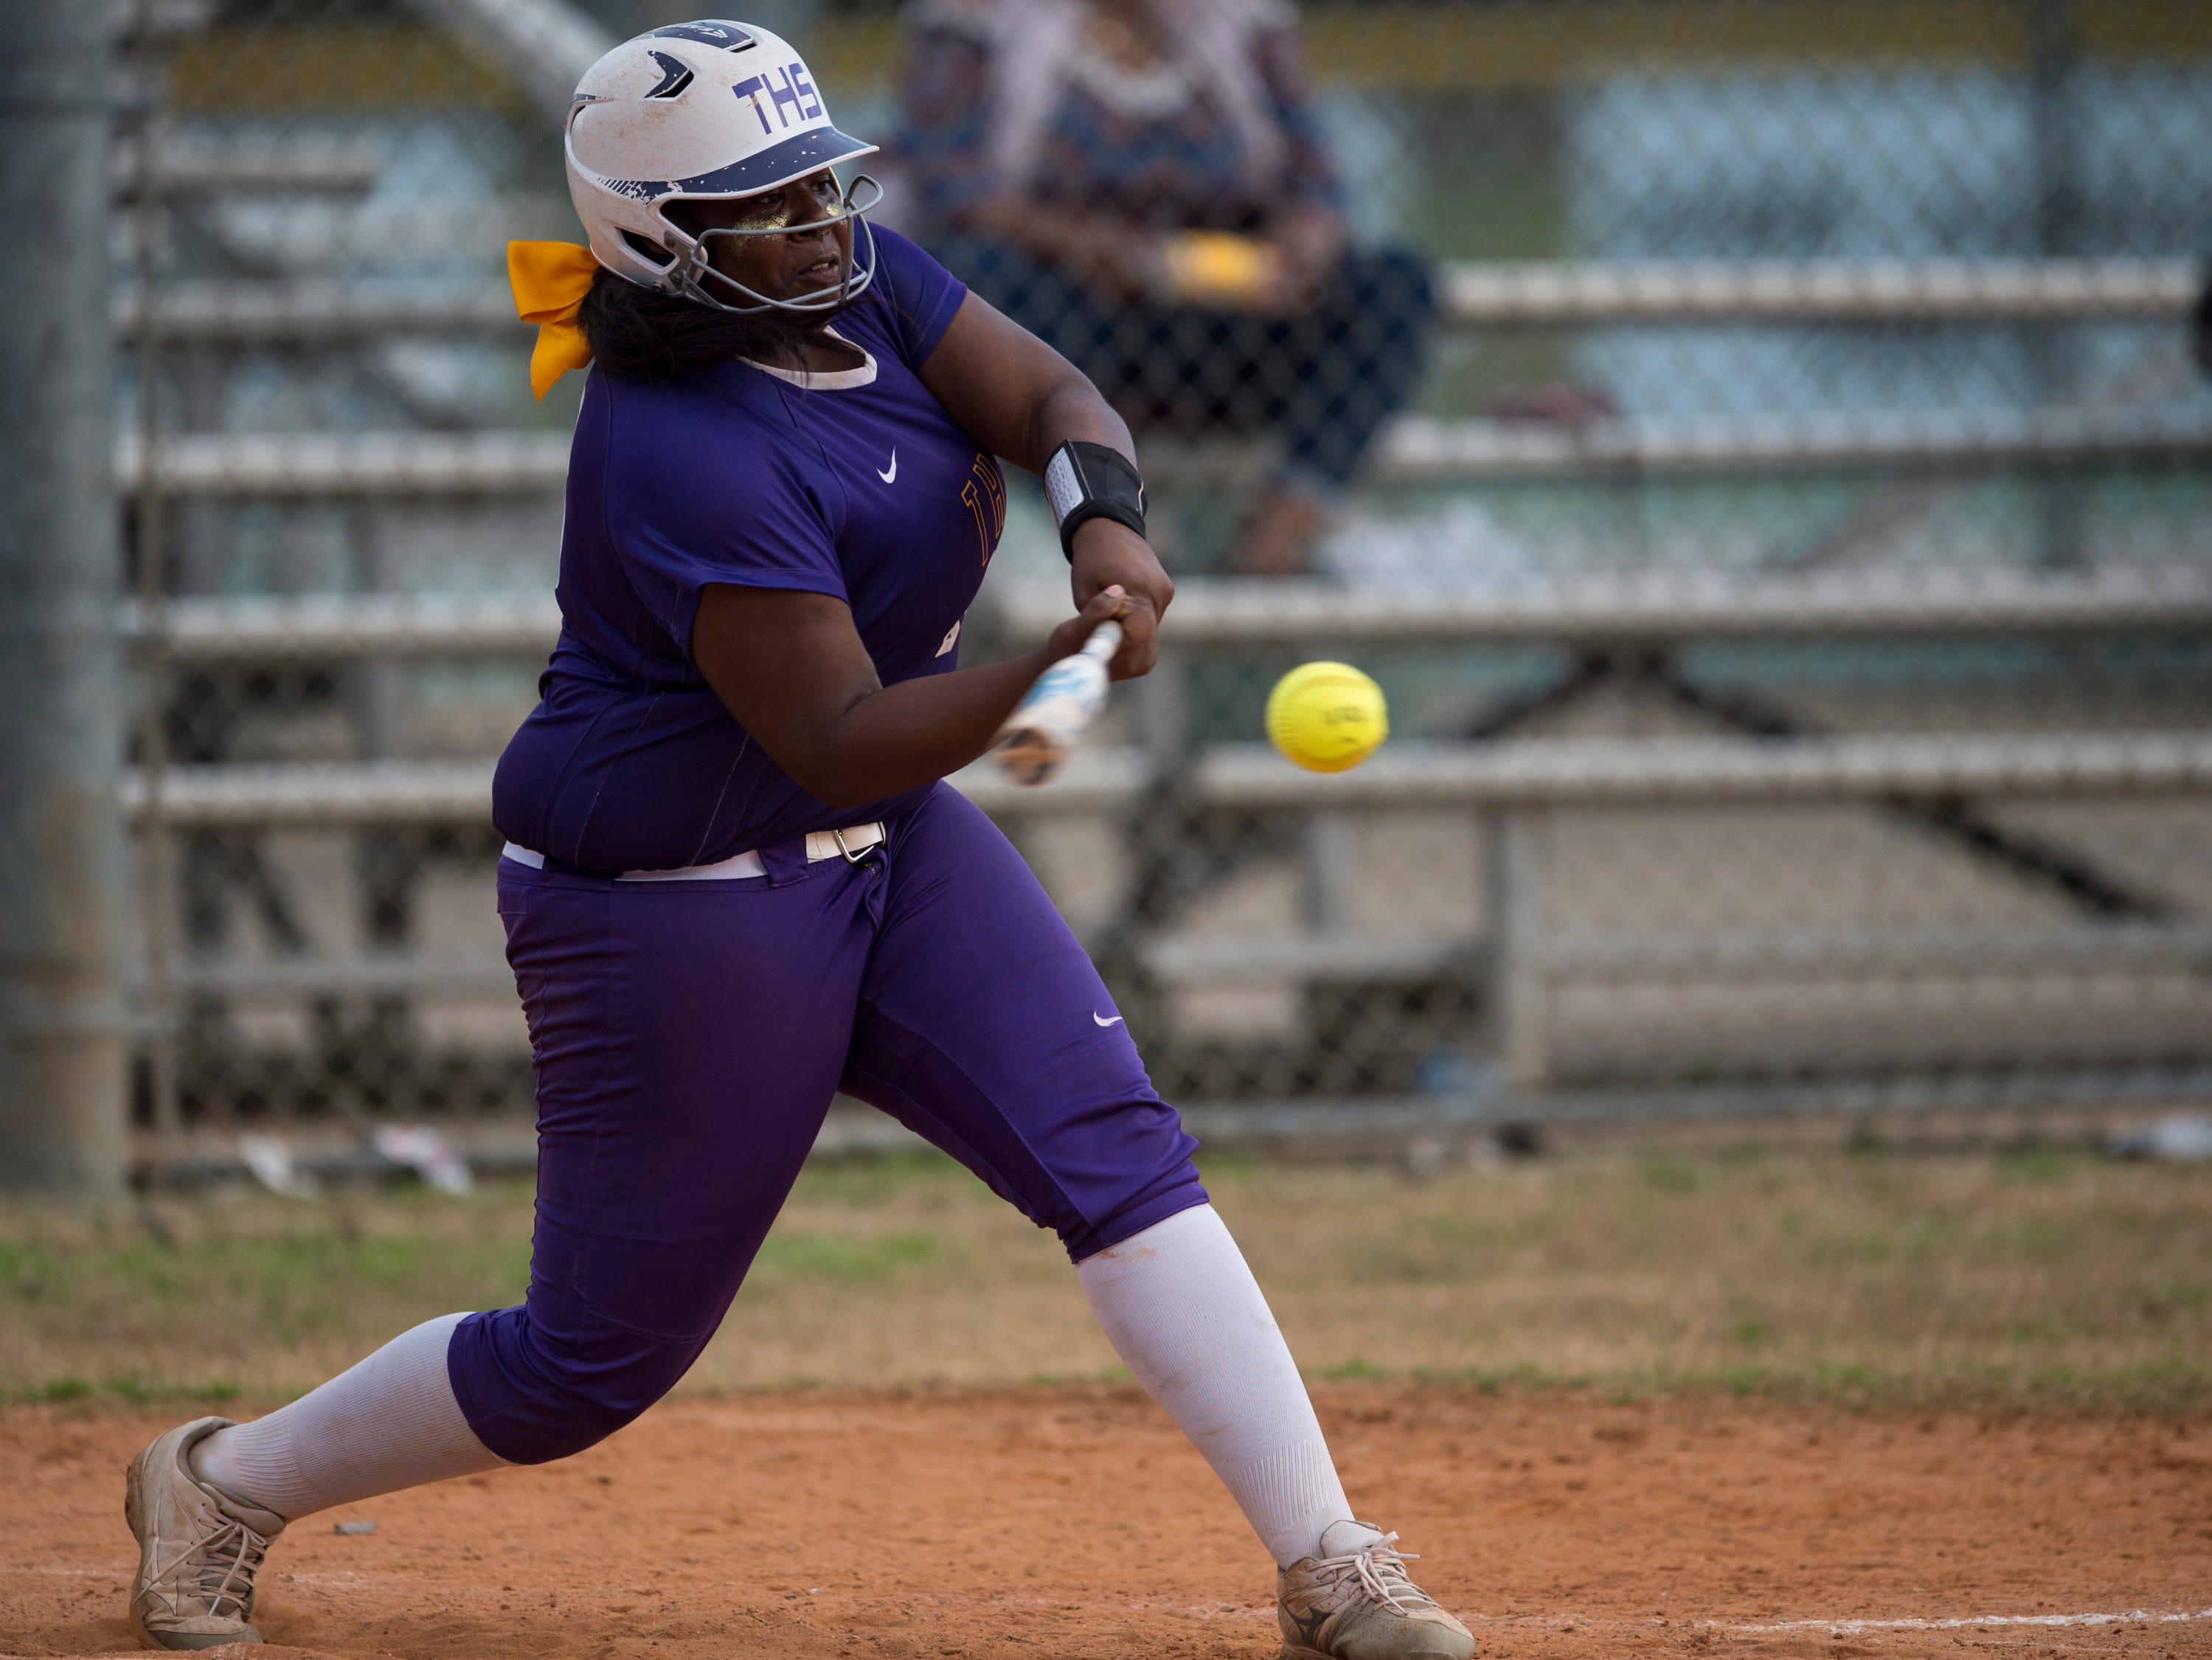 Tallassee's Ayanna Cole (33) swings at the ball at Thompson Park in Montgomery, Ala., on Thursday, March 14, 2019. Tallassee defeated Brew Tech 7-0.